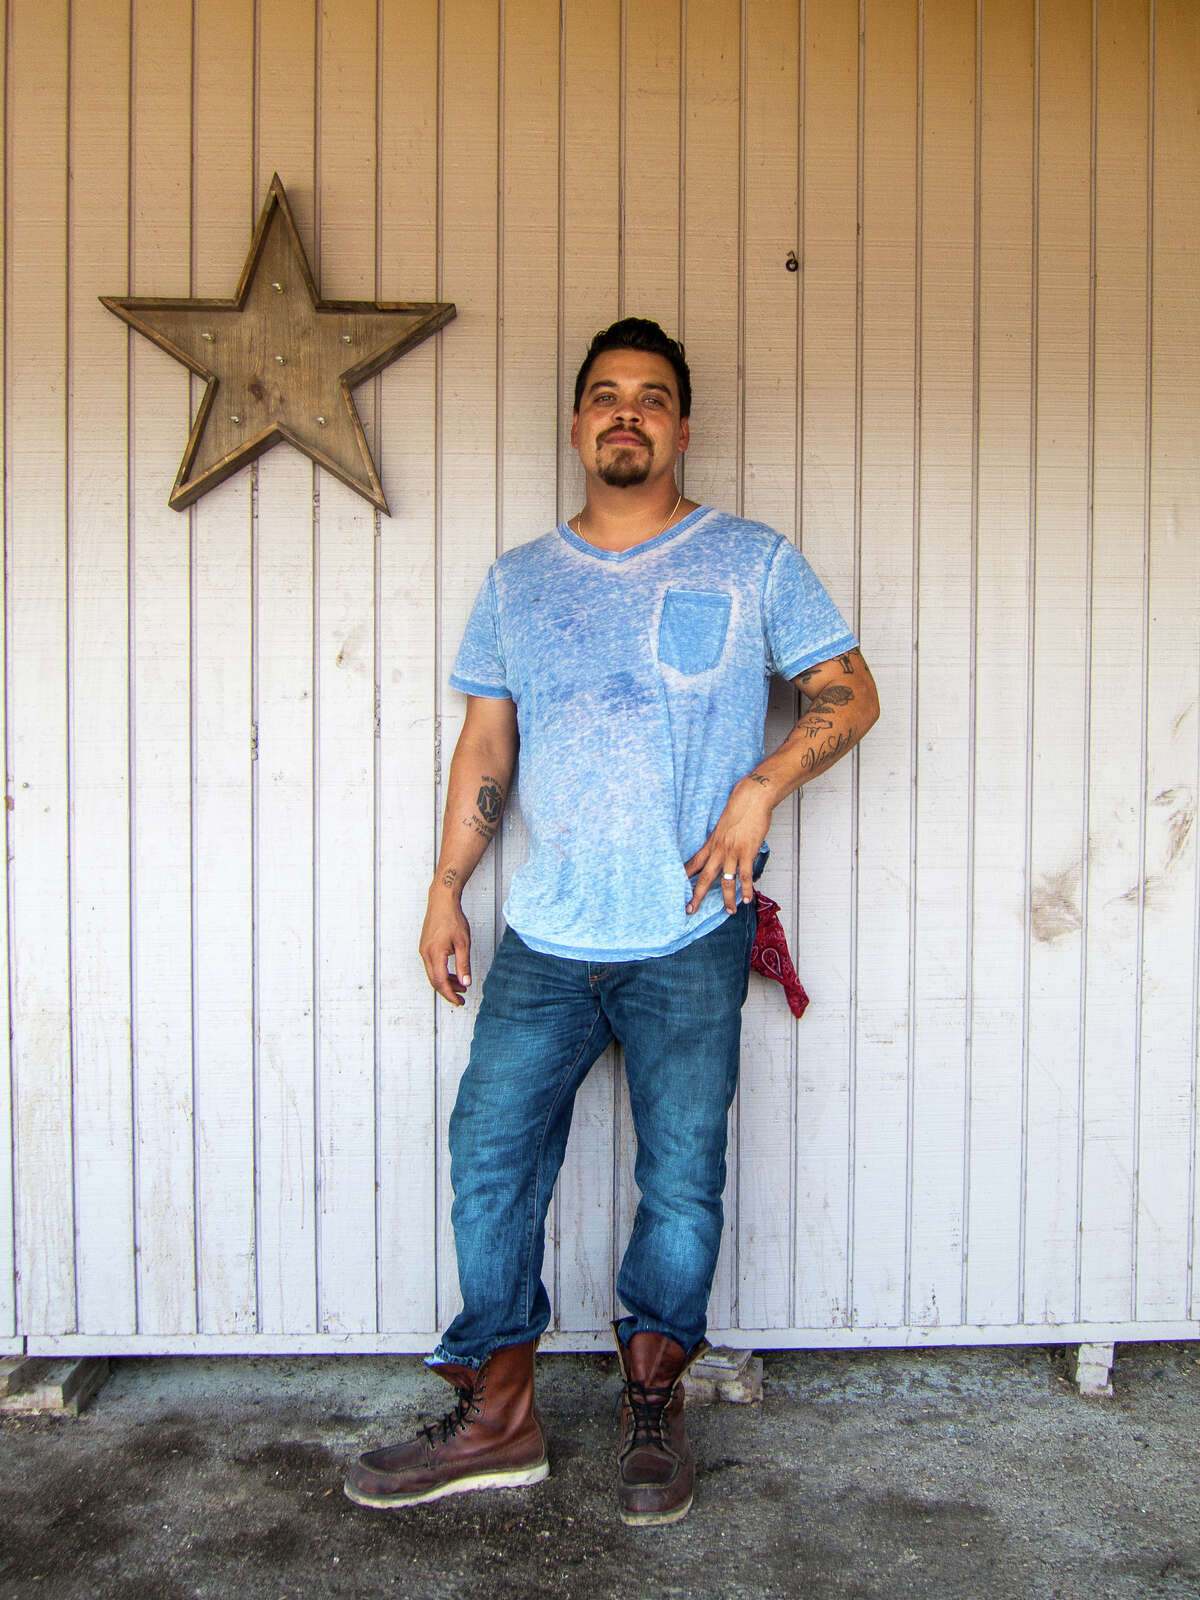 Pitmaster Miguel Vidal of Valentina's Tex-Mex in Austin will participate in the inaugural HOU-ATX BBQ Throwdown on Dec. 3 at Saint Arnold Brewing Company. Sponsored by the Houston Barbecue Festival and Saint Arnold, the event features top barbecue restaurants from the Houston and Austin area in a competition for the perfect Texas barbecue dish.